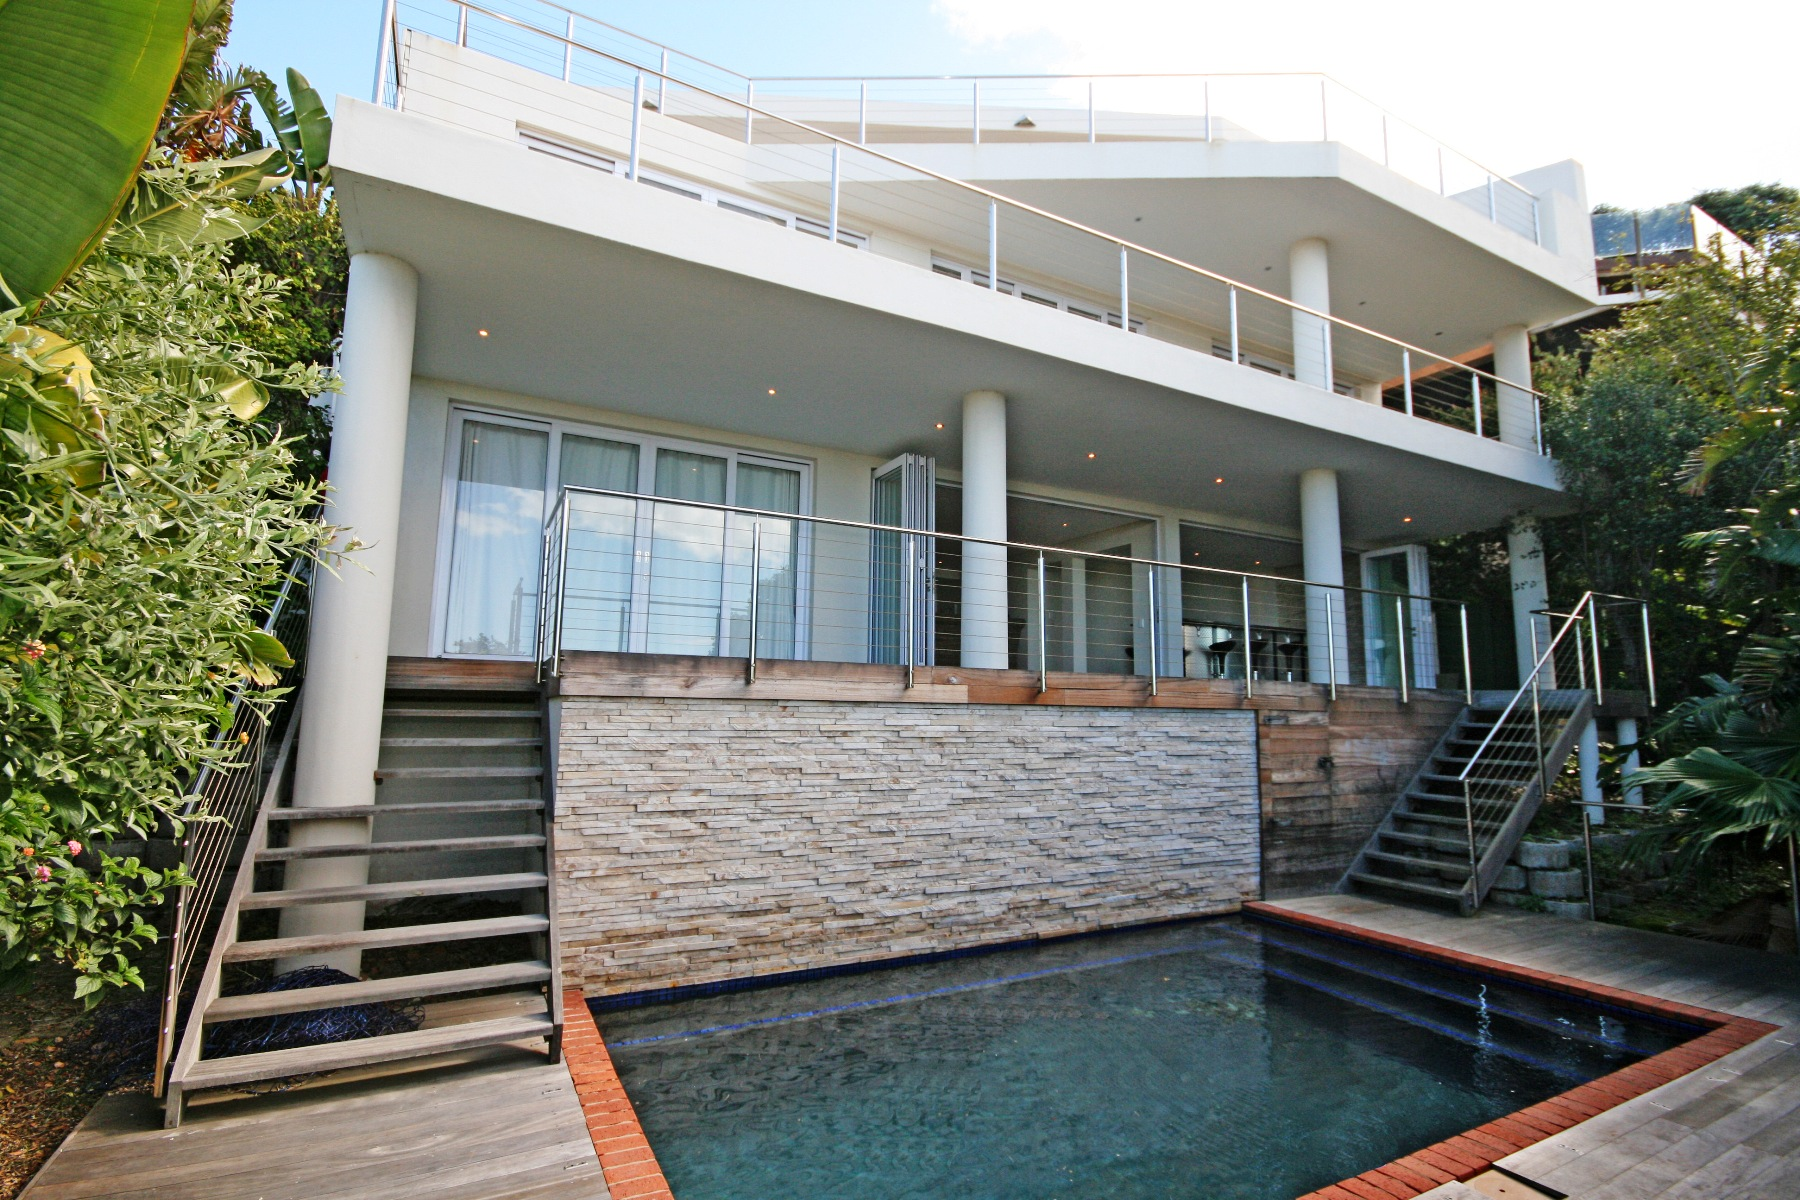 Single Family Home for Sale at Simply Magical Plettenberg Bay, Western Cape, 6600 South Africa